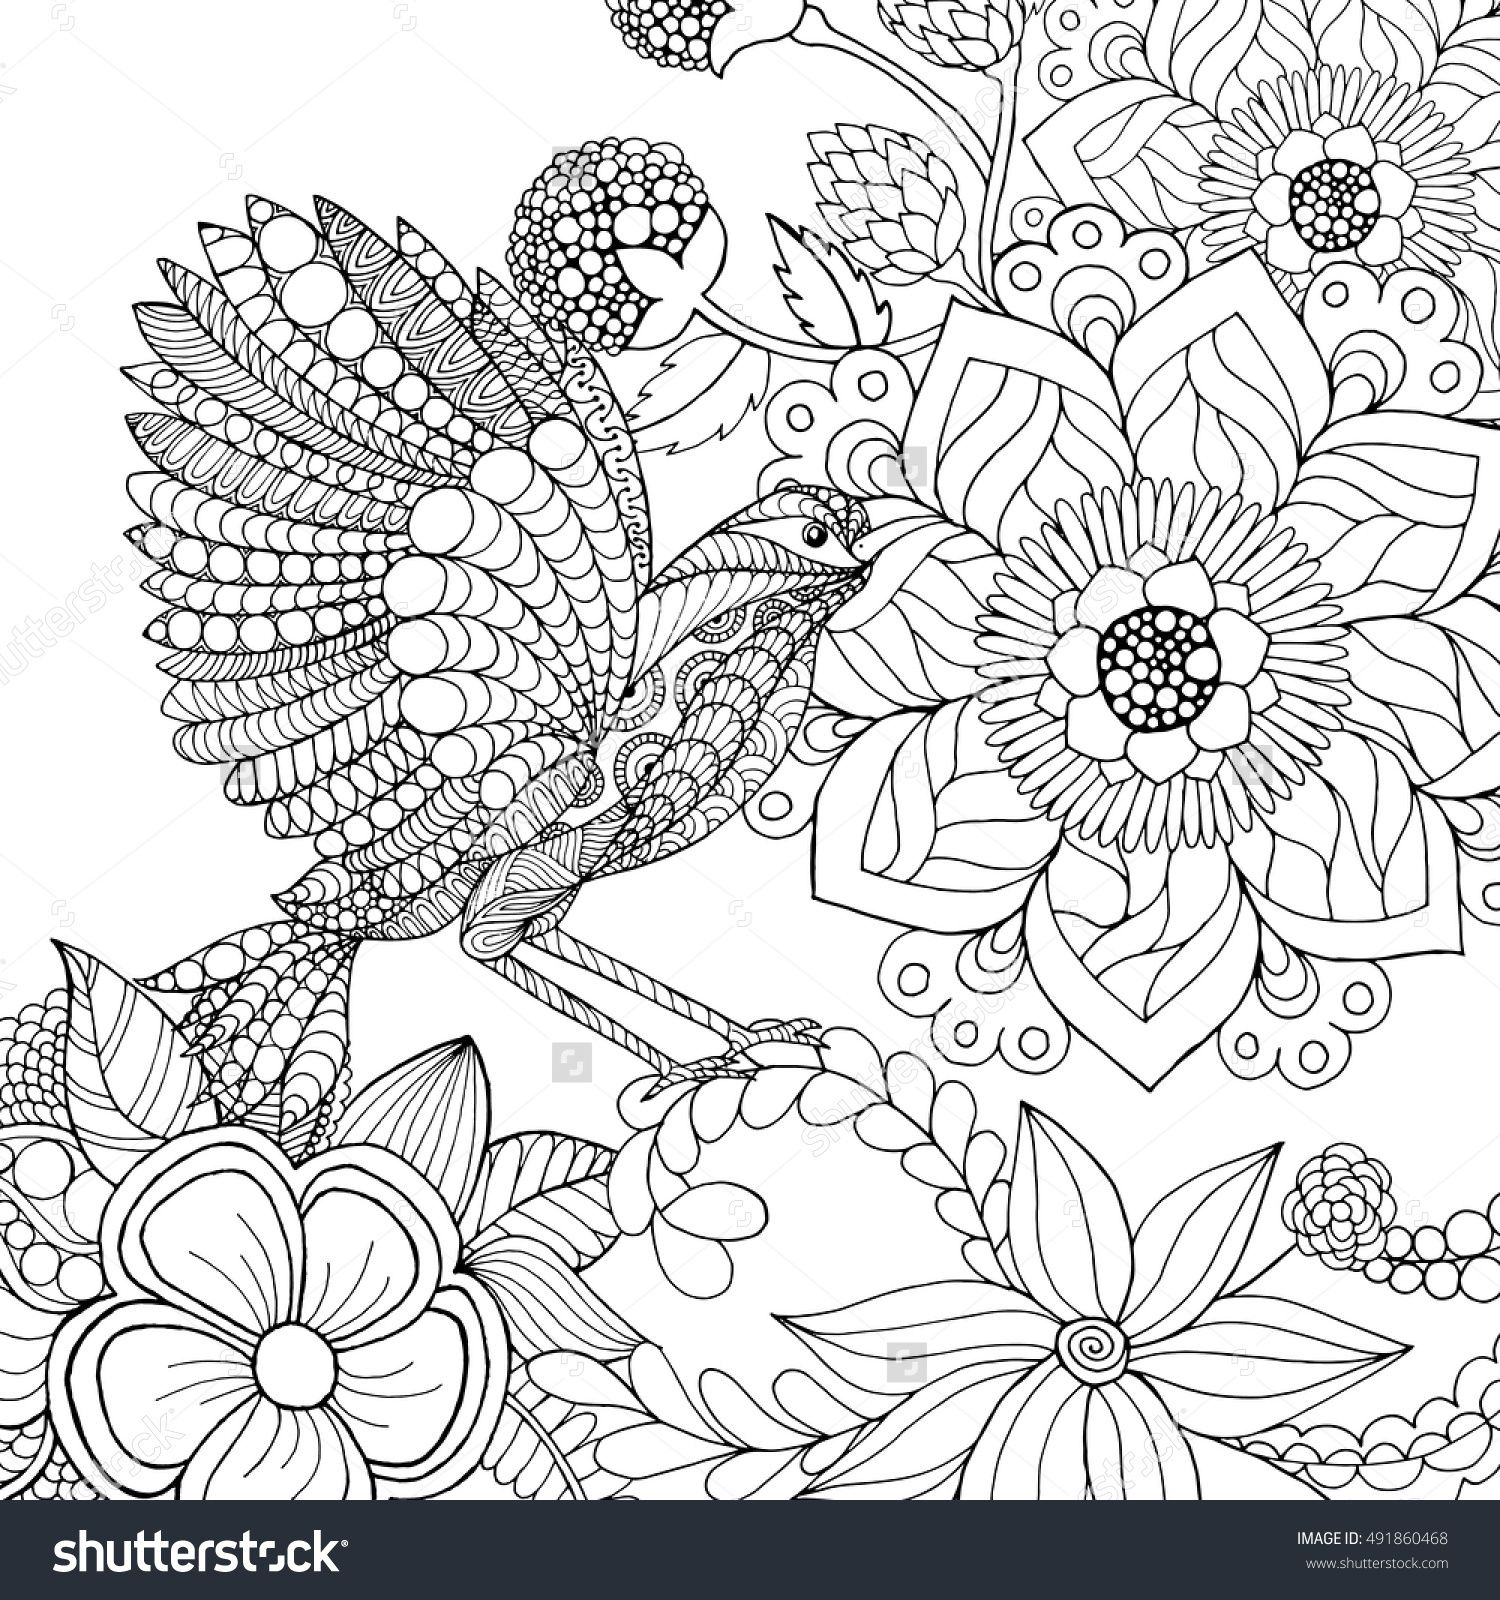 black white hand drawn doodle ethnic patterned vector